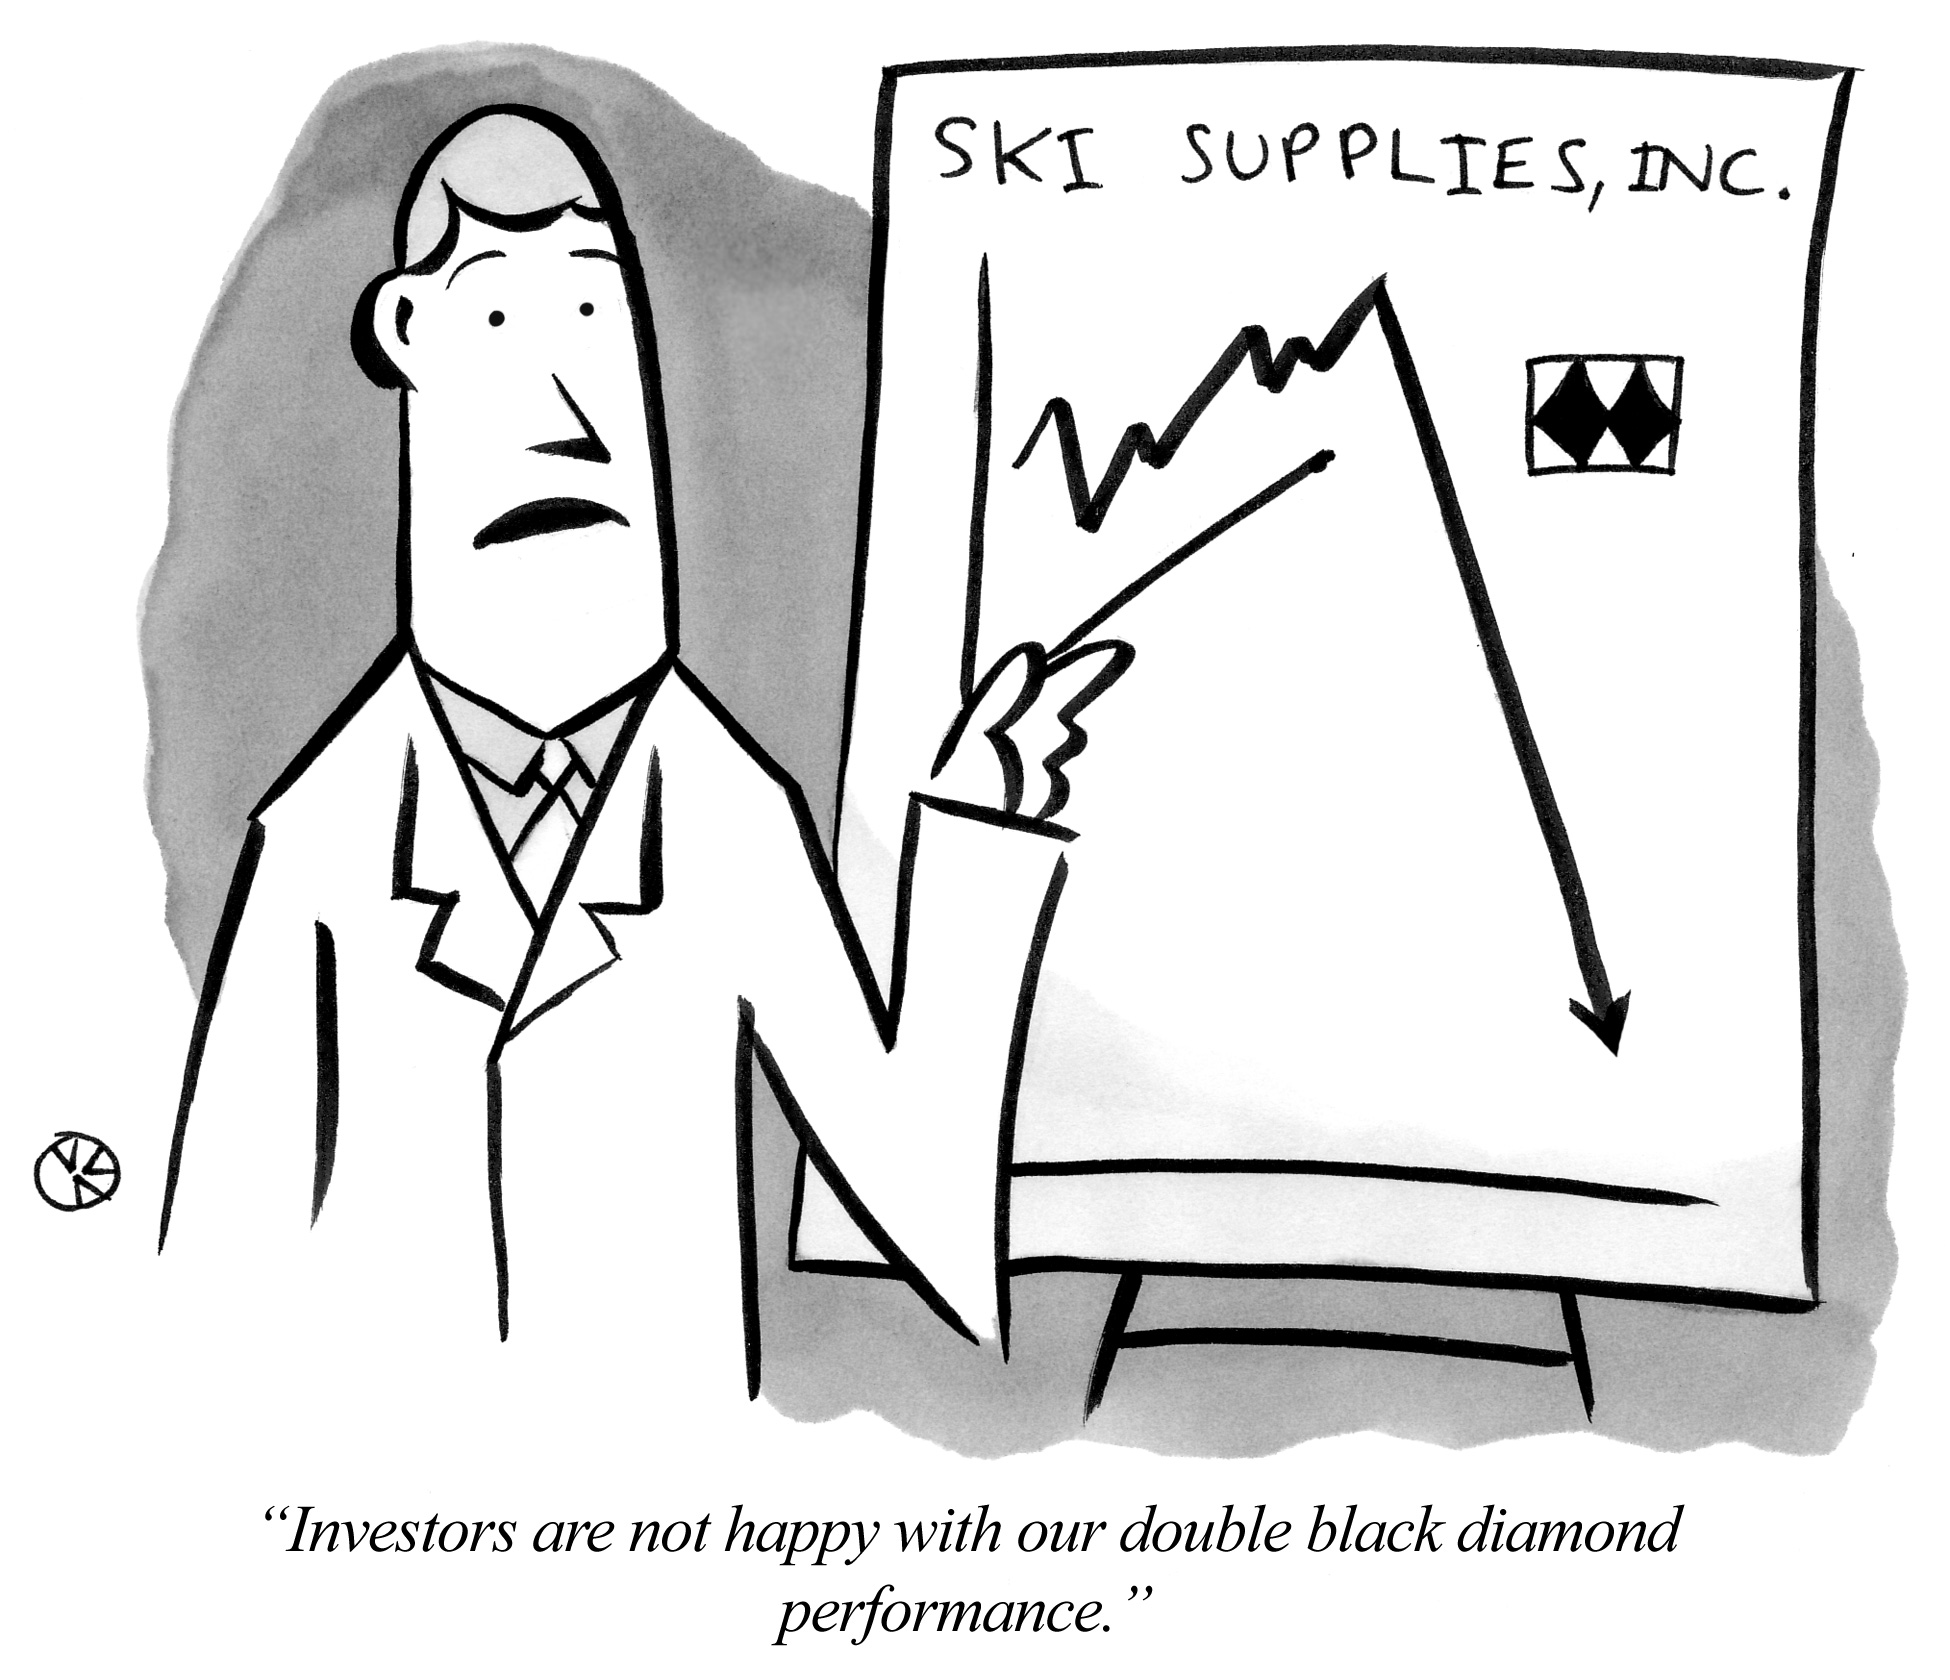 Investors are not happy with our double black diamond performance.